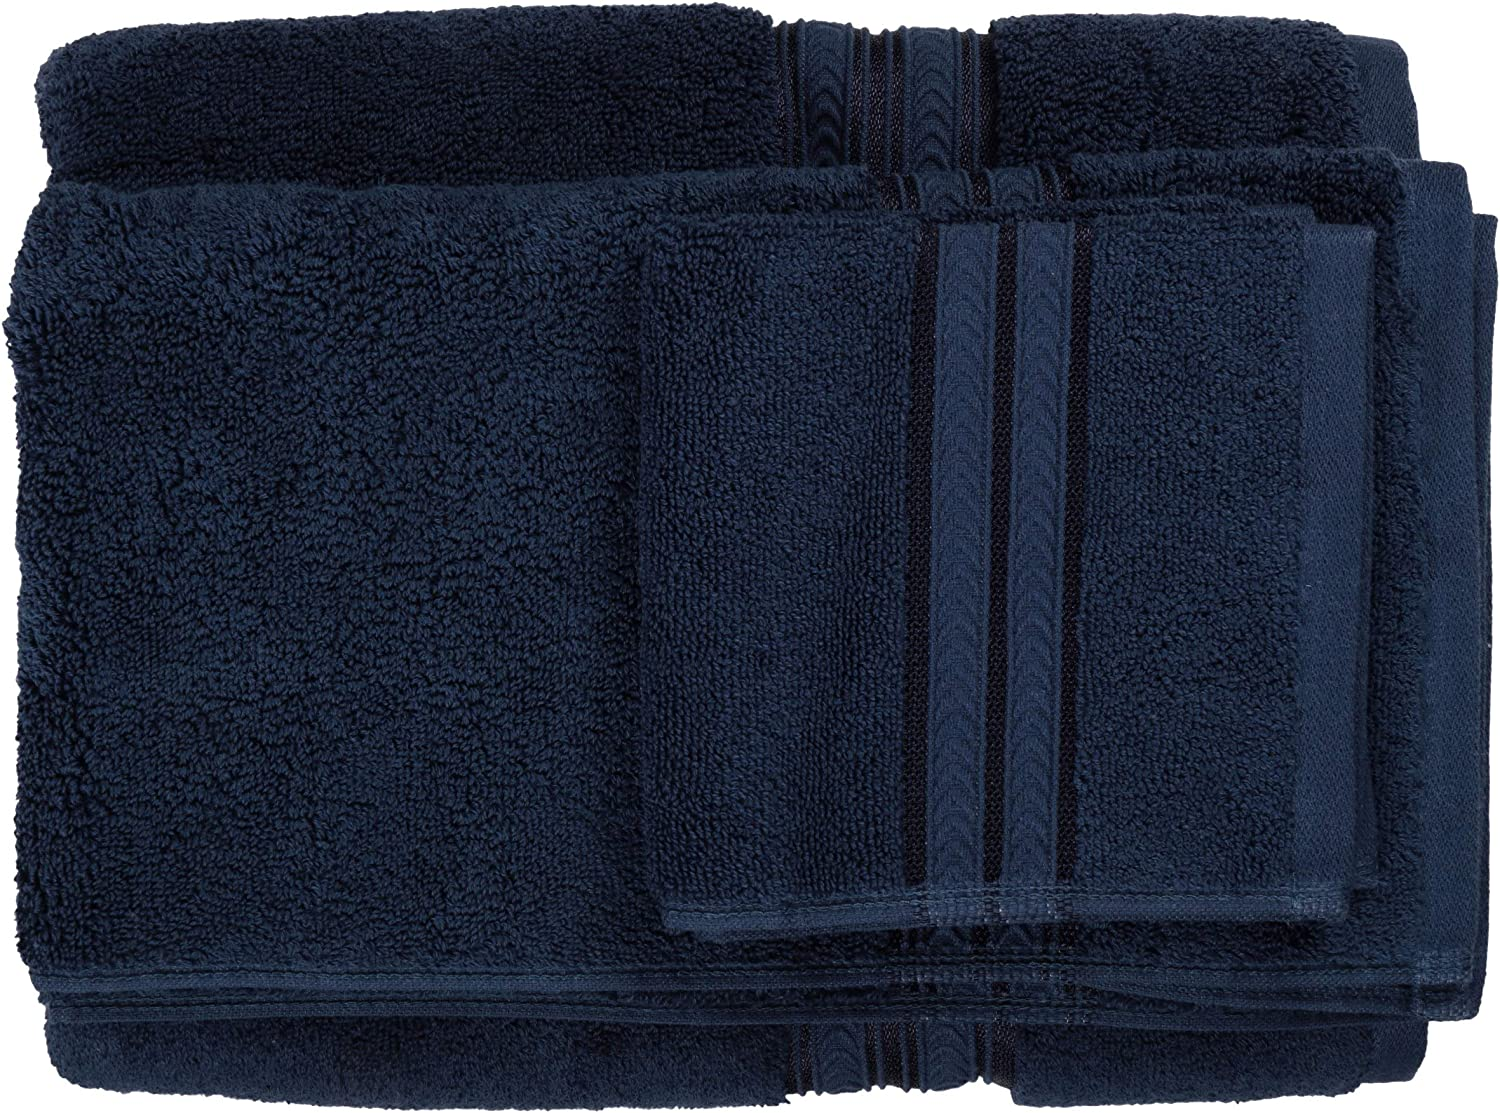 Blue Admiral Better Homes and Gardens Thick and Plush Bath Towel Collection 6 Piece Bath Towel